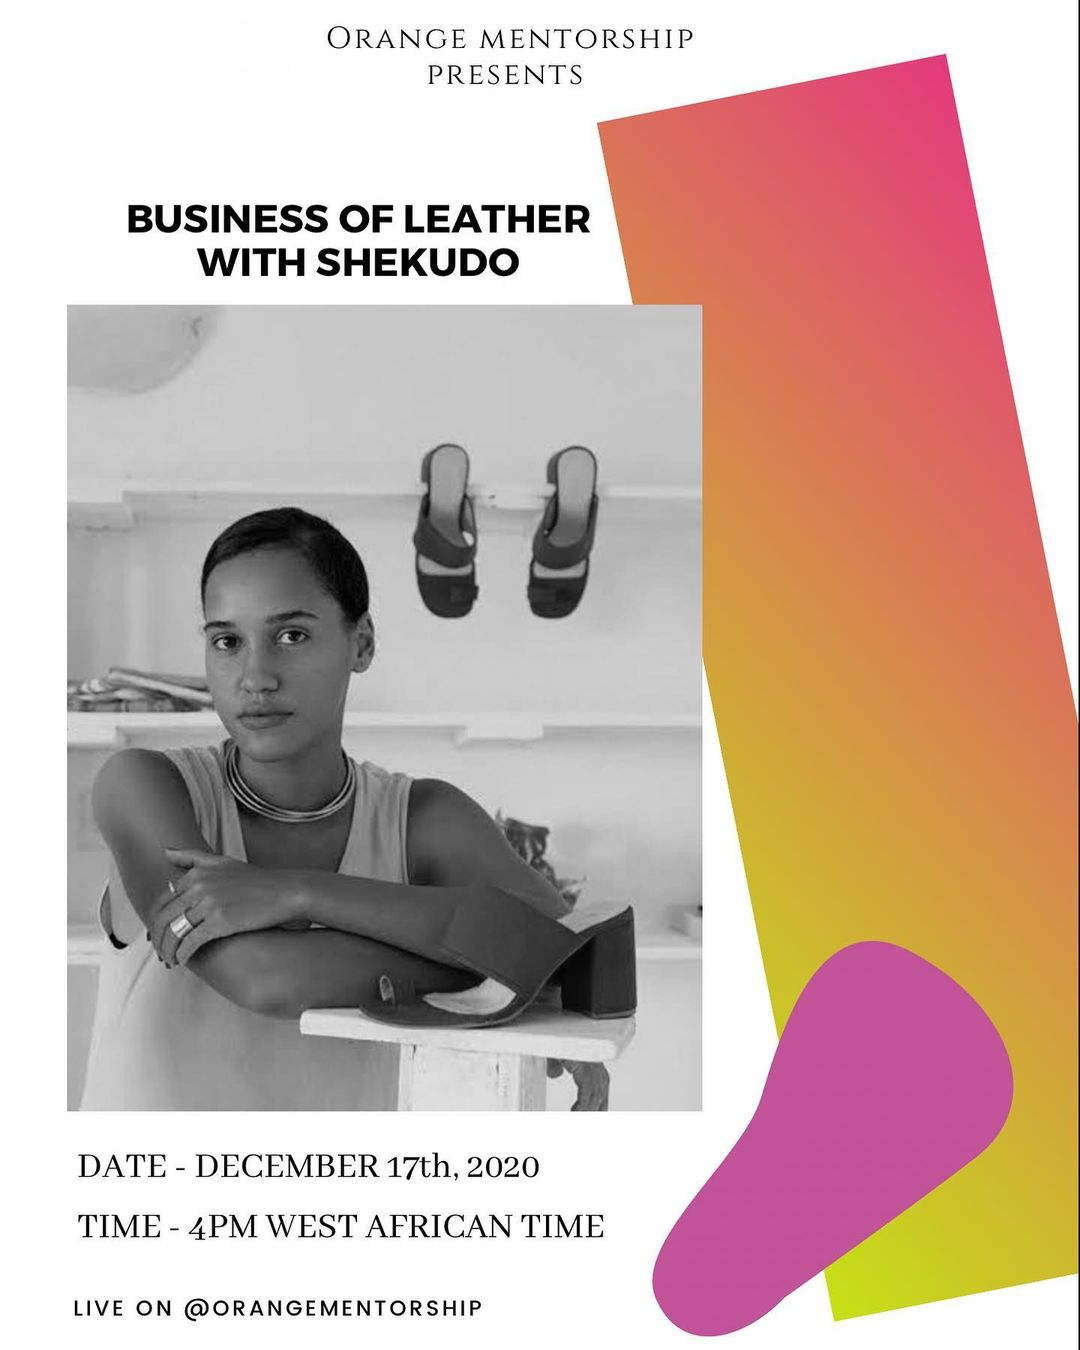 Adebayo Oke-Lawal Discusses the Business Of Leather with Shekudo's Akudo Iheakanwa